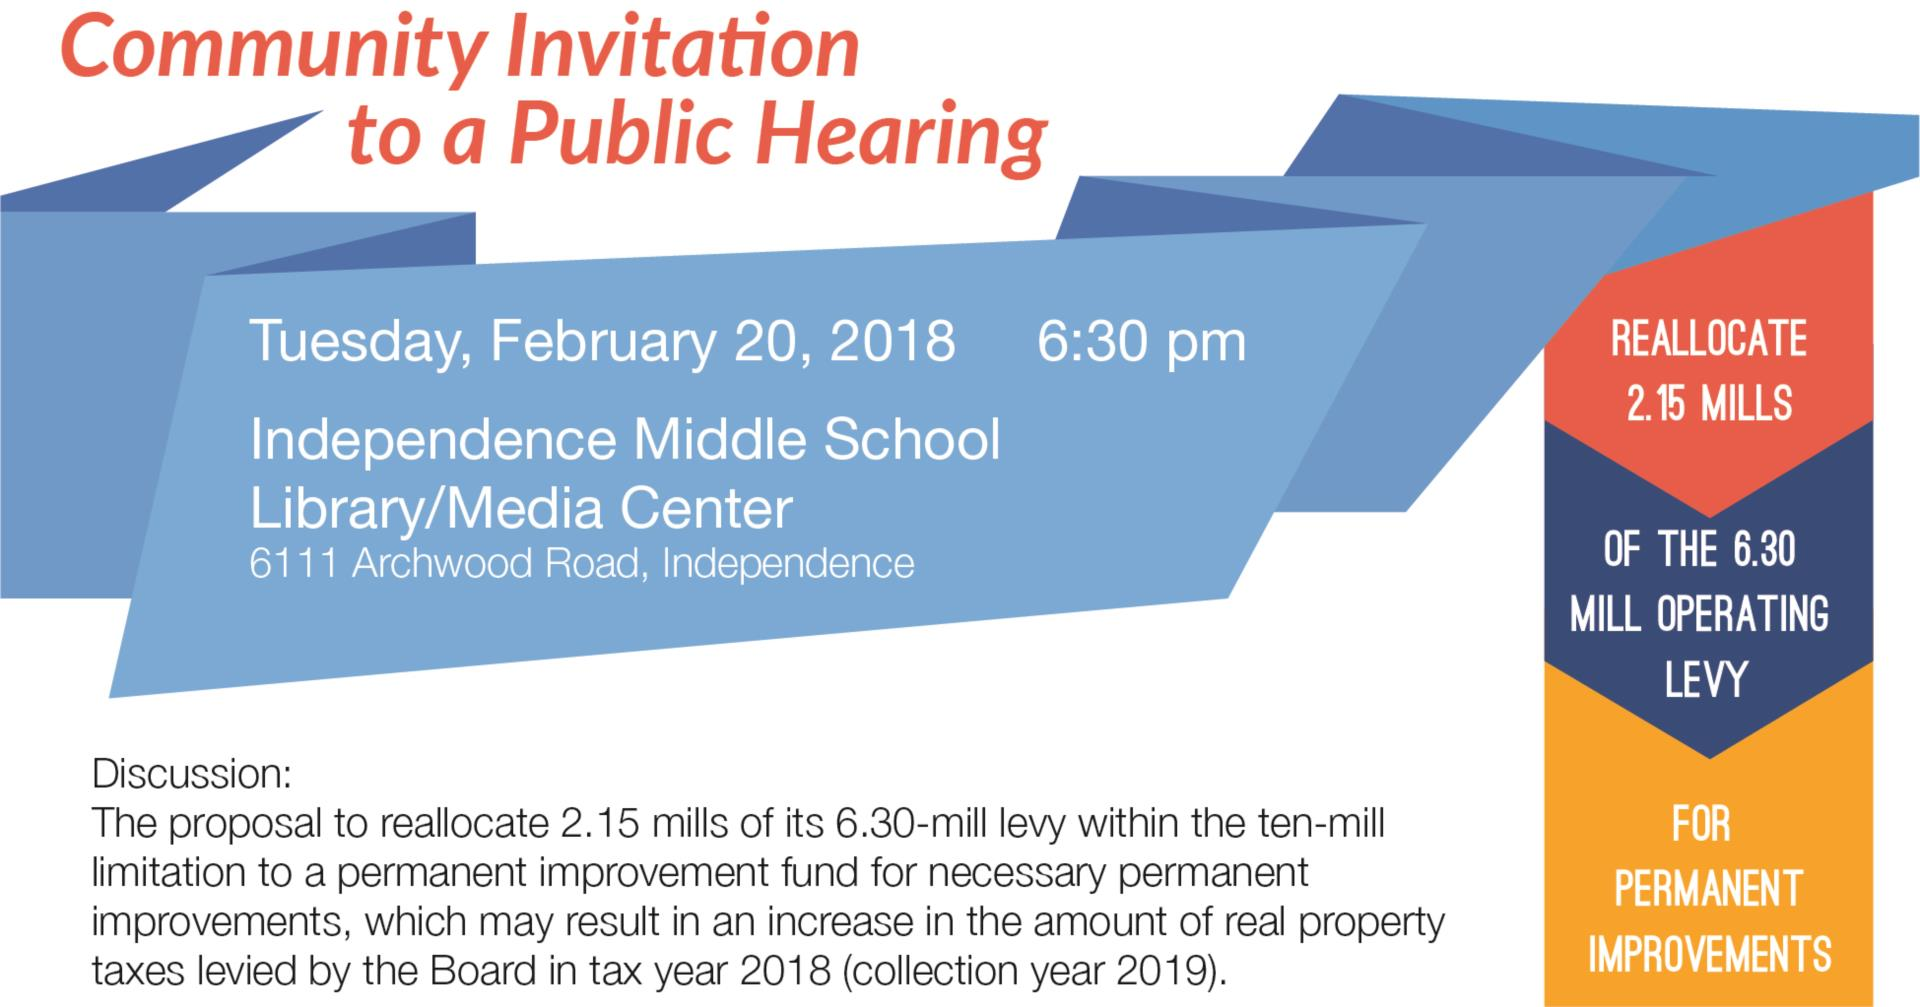 Invite to Community Meeting on February 20